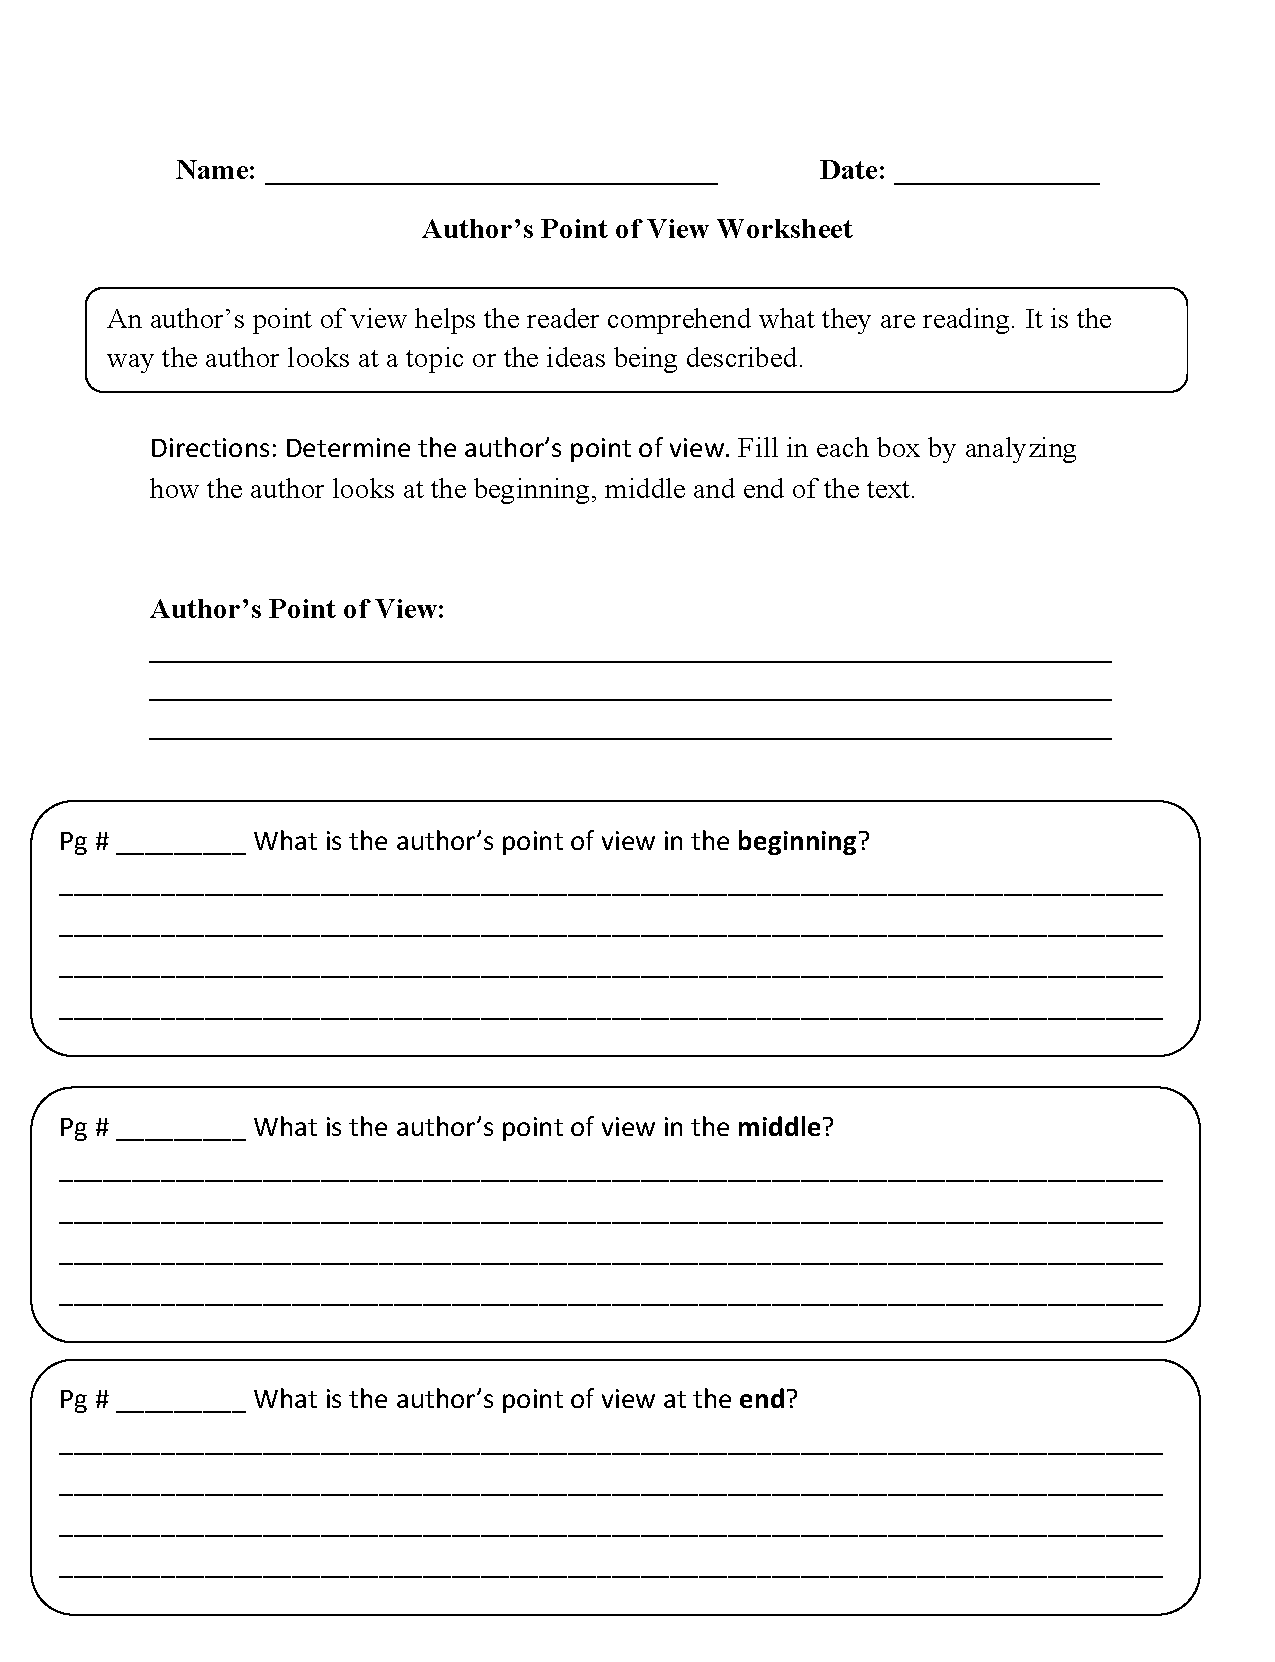 Weirdmailus  Unique Englishlinxcom  Point Of View Worksheets With Likable Point Of View Worksheets With Adorable Dot Diagram Worksheet Also Foil Math Worksheets In Addition K Worksheets And High School Writing Worksheets As Well As Acid Naming Worksheet Additionally Khan Academy Math Worksheets From Englishlinxcom With Weirdmailus  Likable Englishlinxcom  Point Of View Worksheets With Adorable Point Of View Worksheets And Unique Dot Diagram Worksheet Also Foil Math Worksheets In Addition K Worksheets From Englishlinxcom